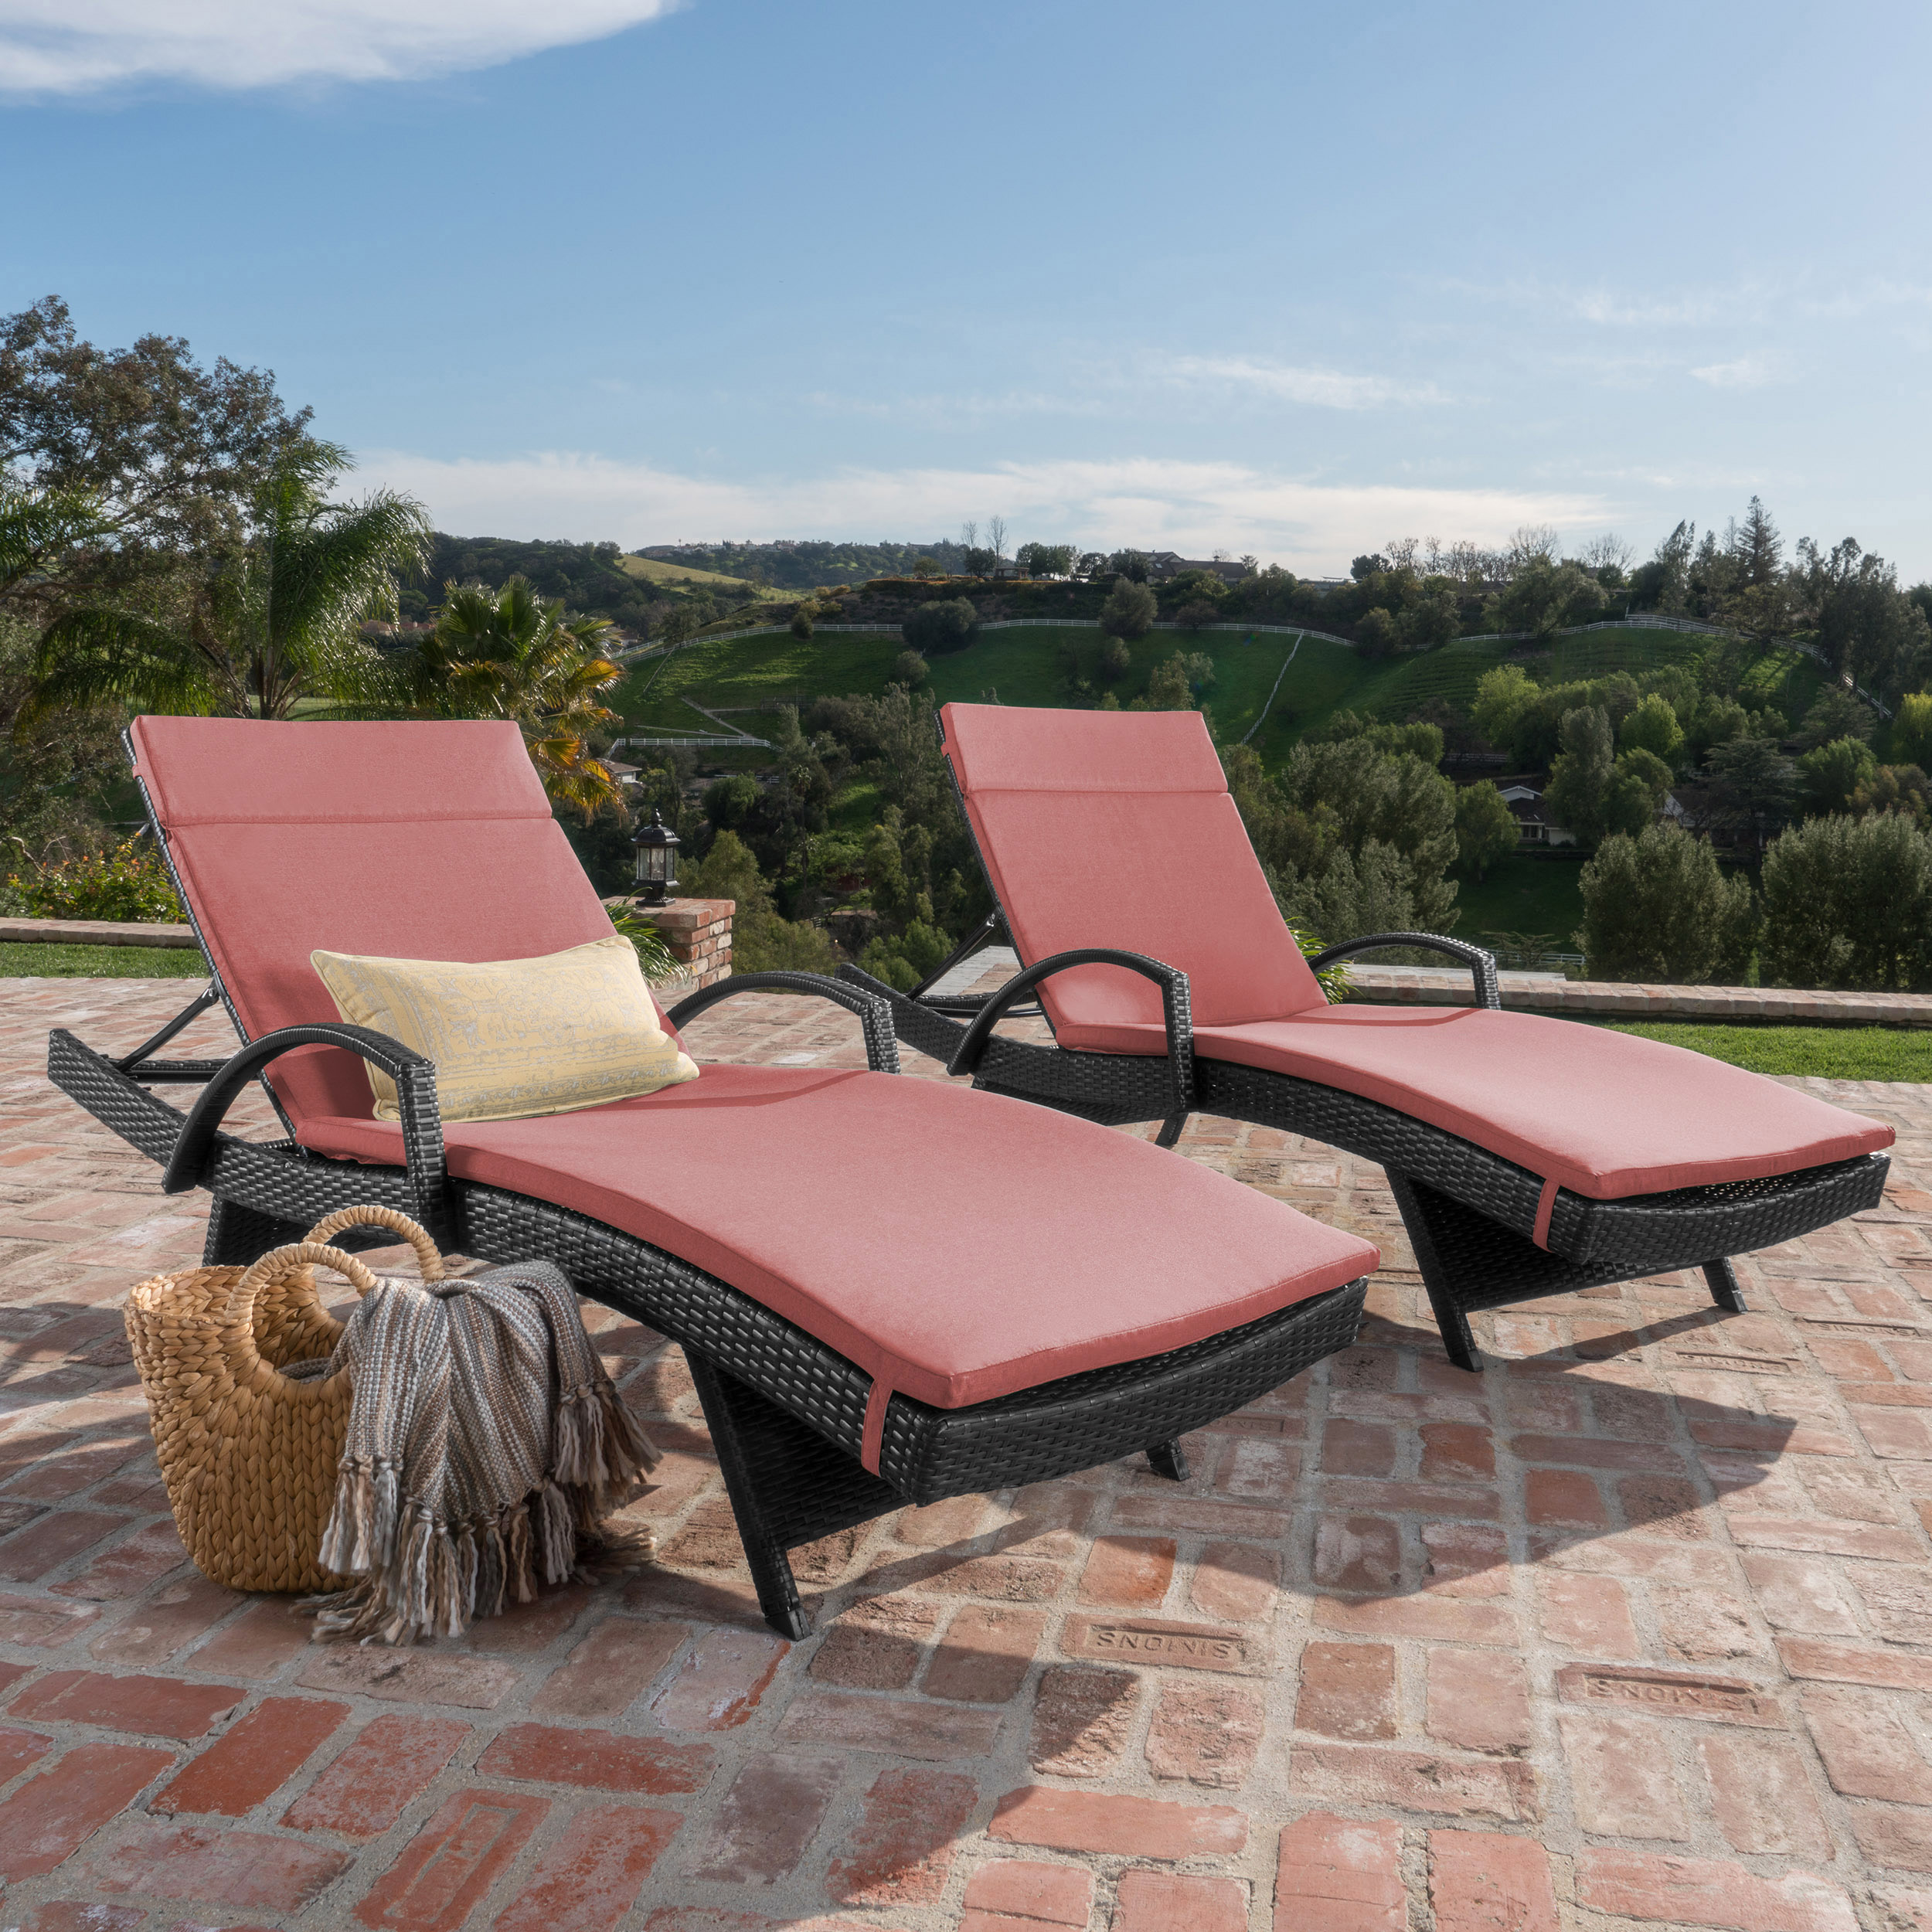 Soleil Outdoor Wicker Chaise Lounges w/ Water Resistant Cushions (Set of 2) (4)